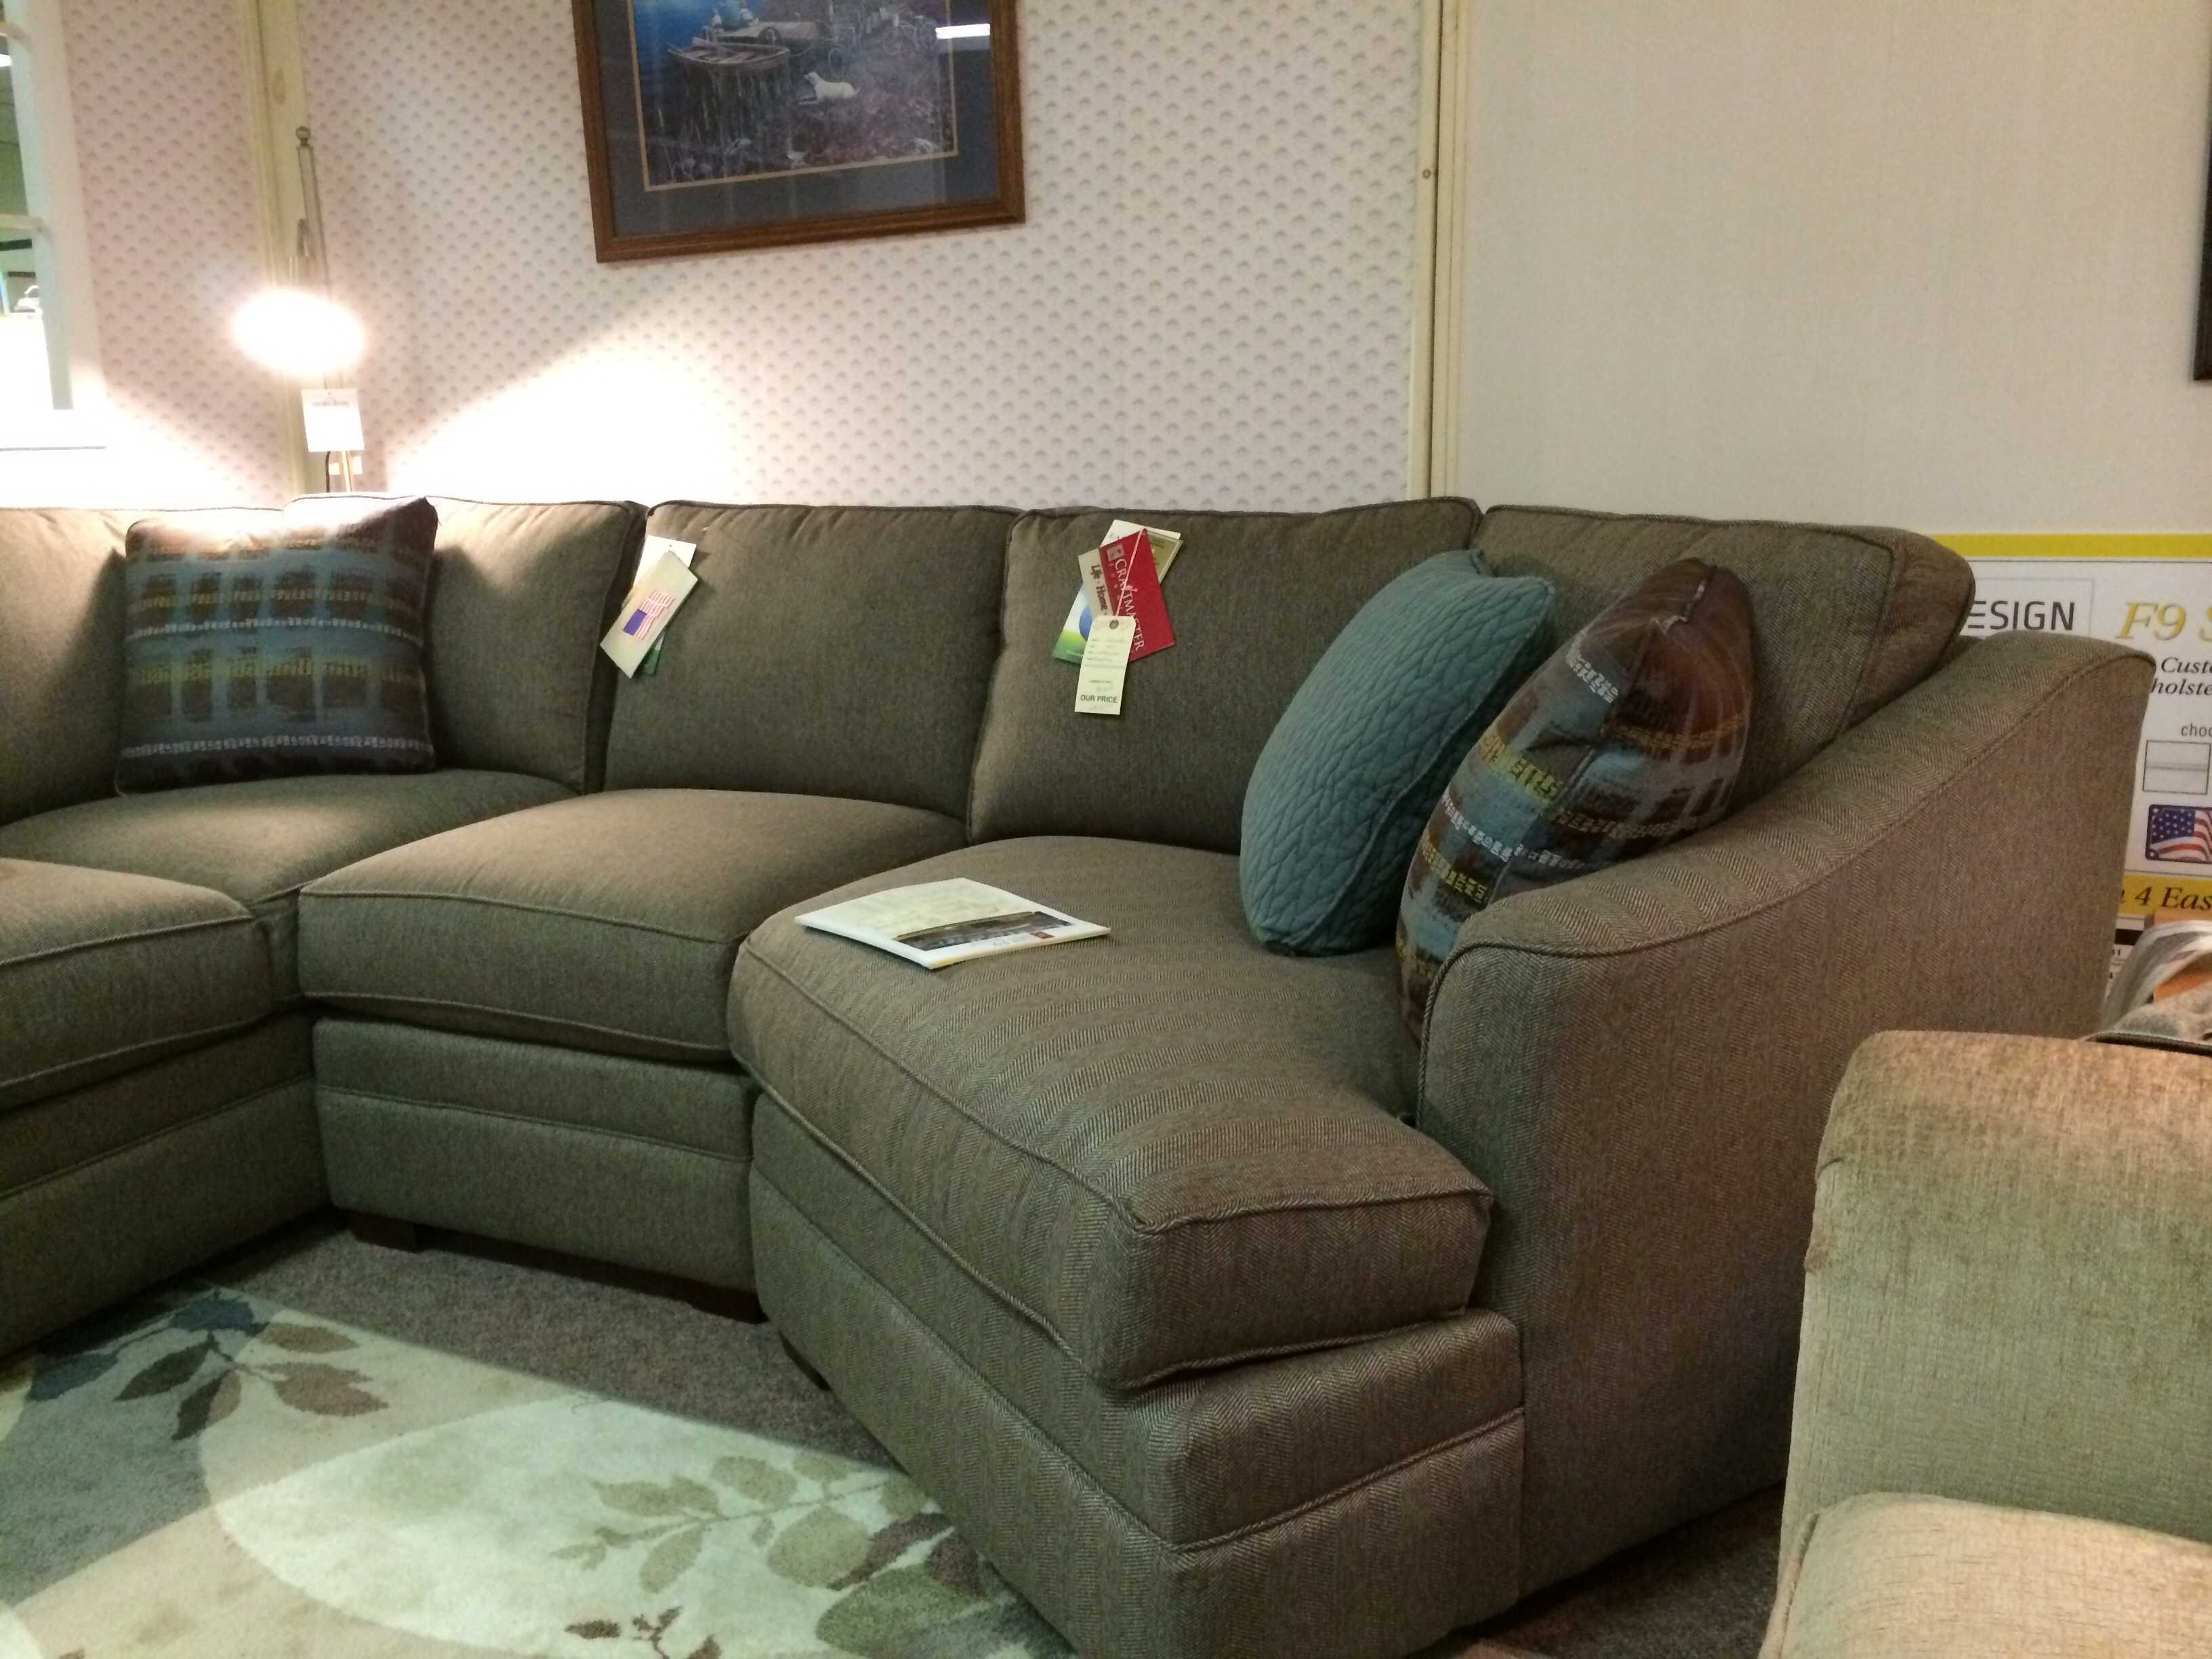 Awesome Sectional Sofa With Cuddler Chaise Also Ideas ~ Eduquin In Sectional Sofas With Cuddler Chaise (View 1 of 10)